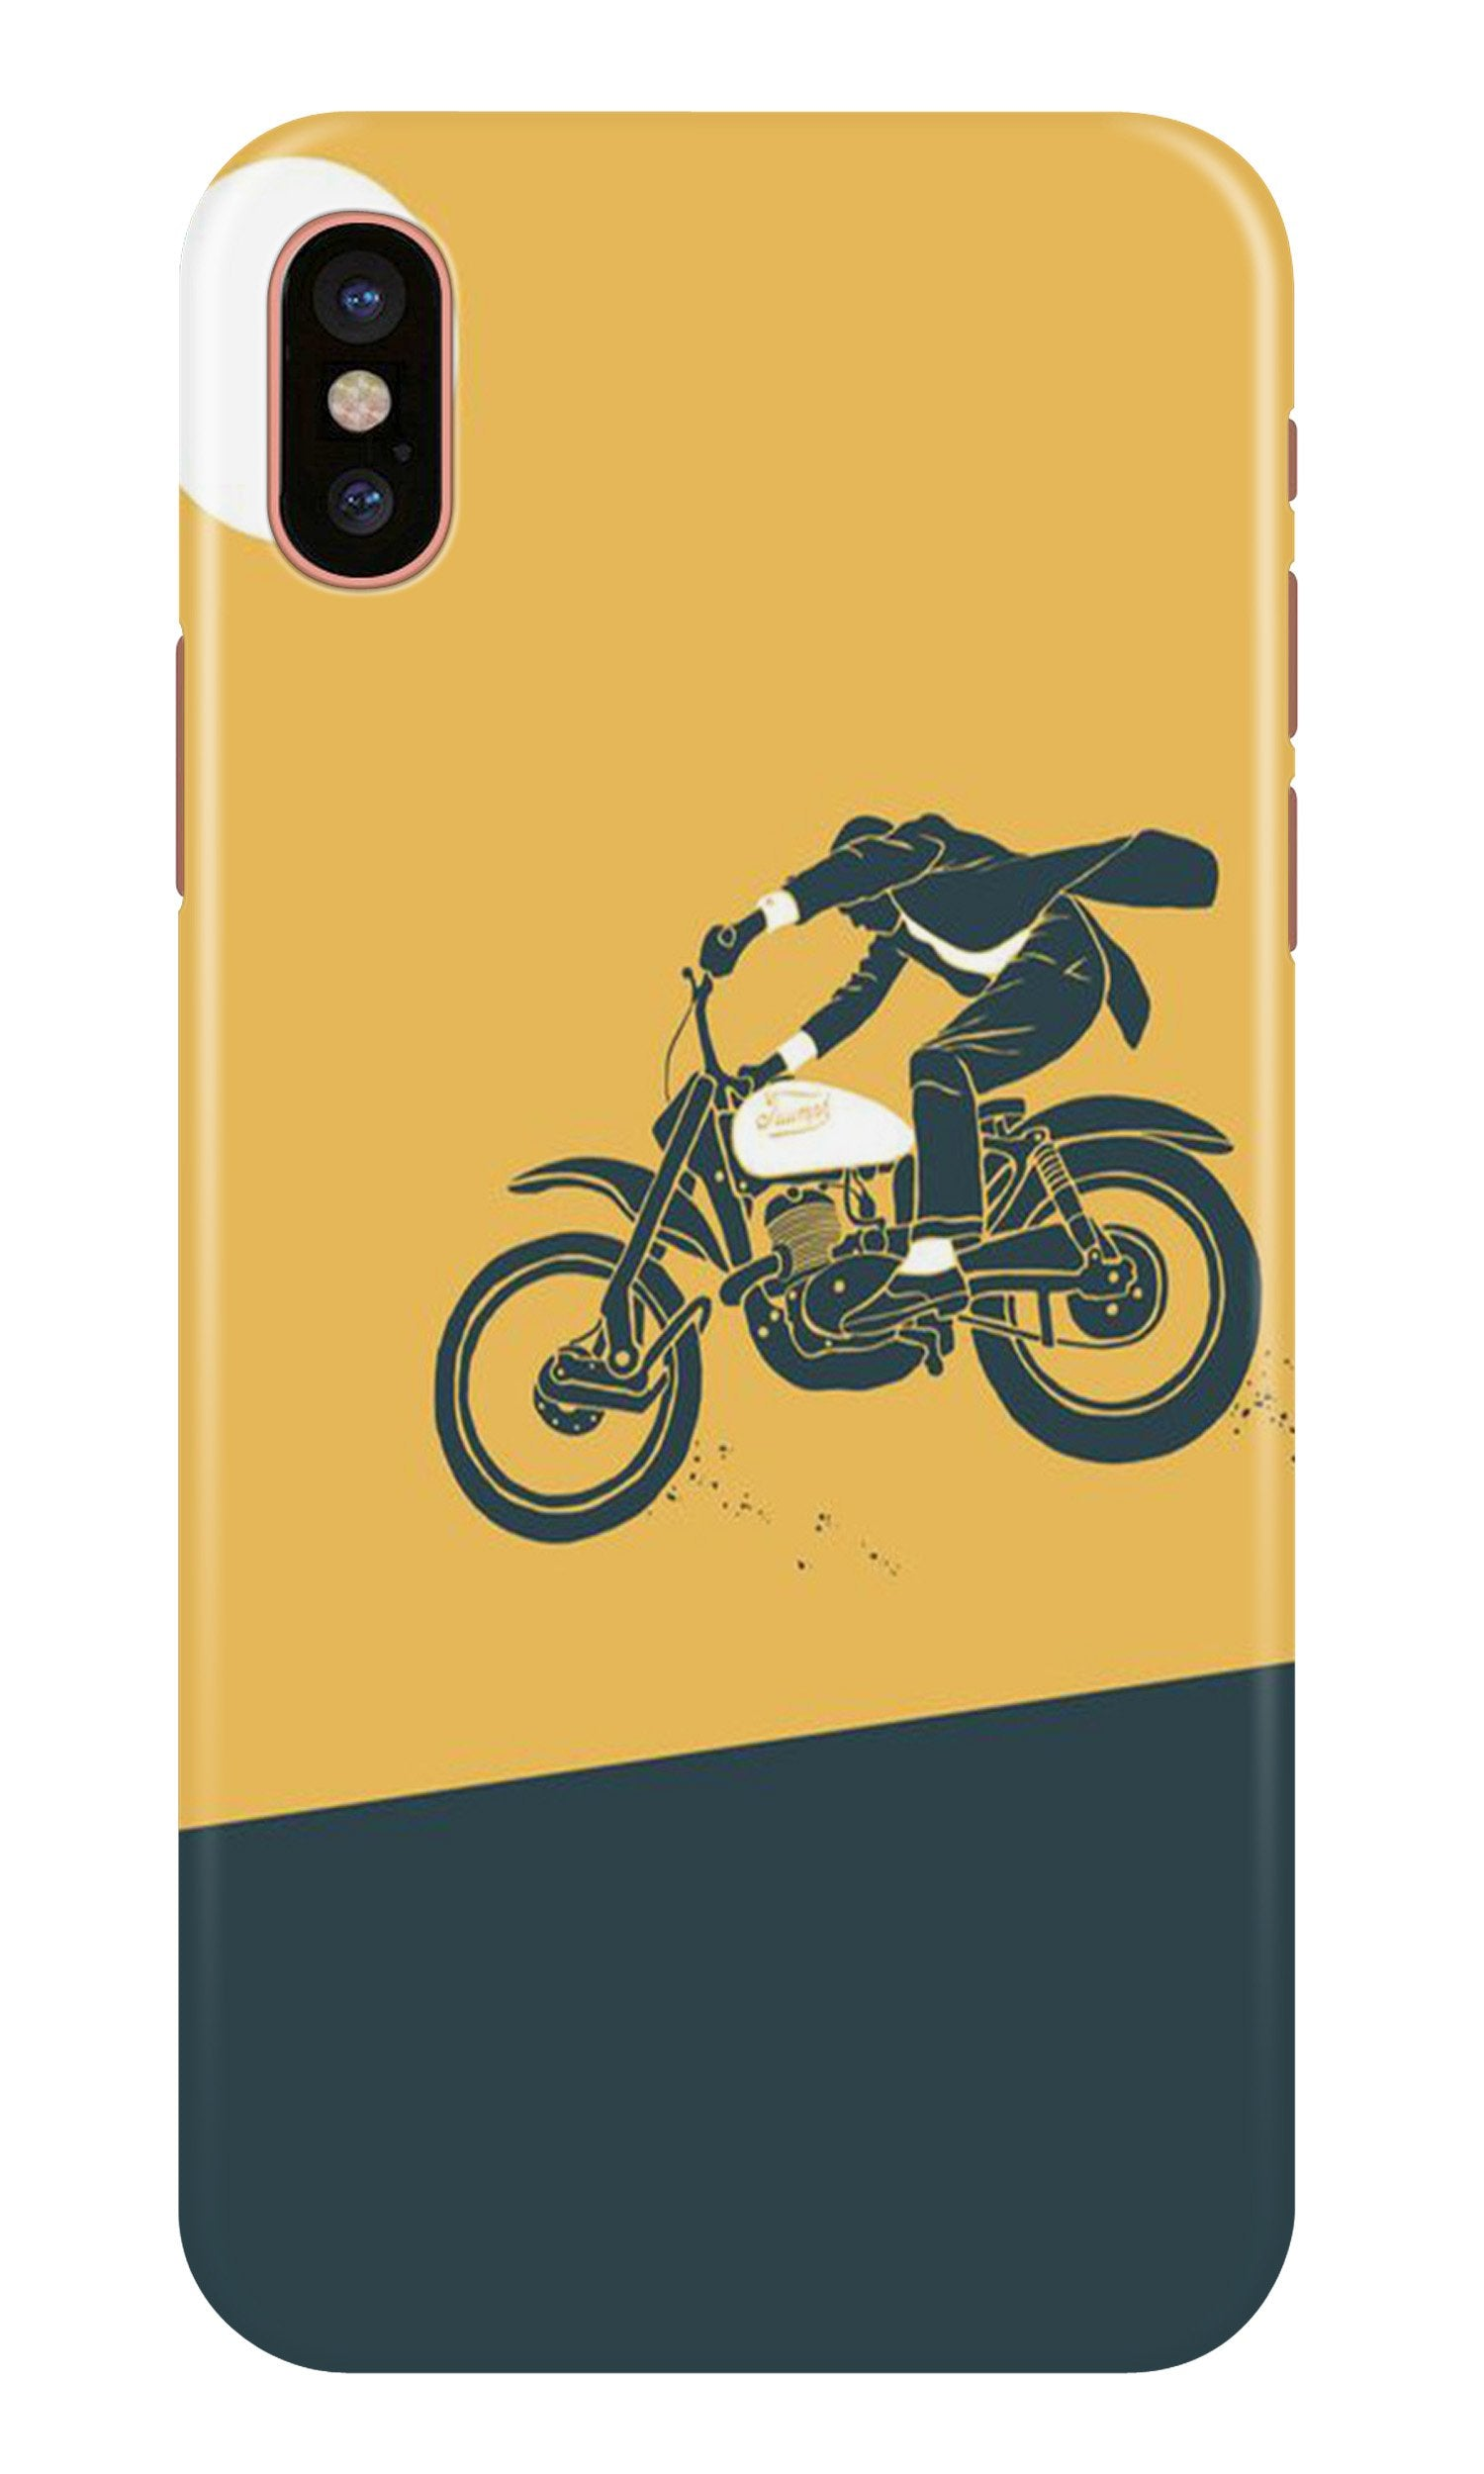 Bike Lovers Case for iPhone X (Design No. 256)